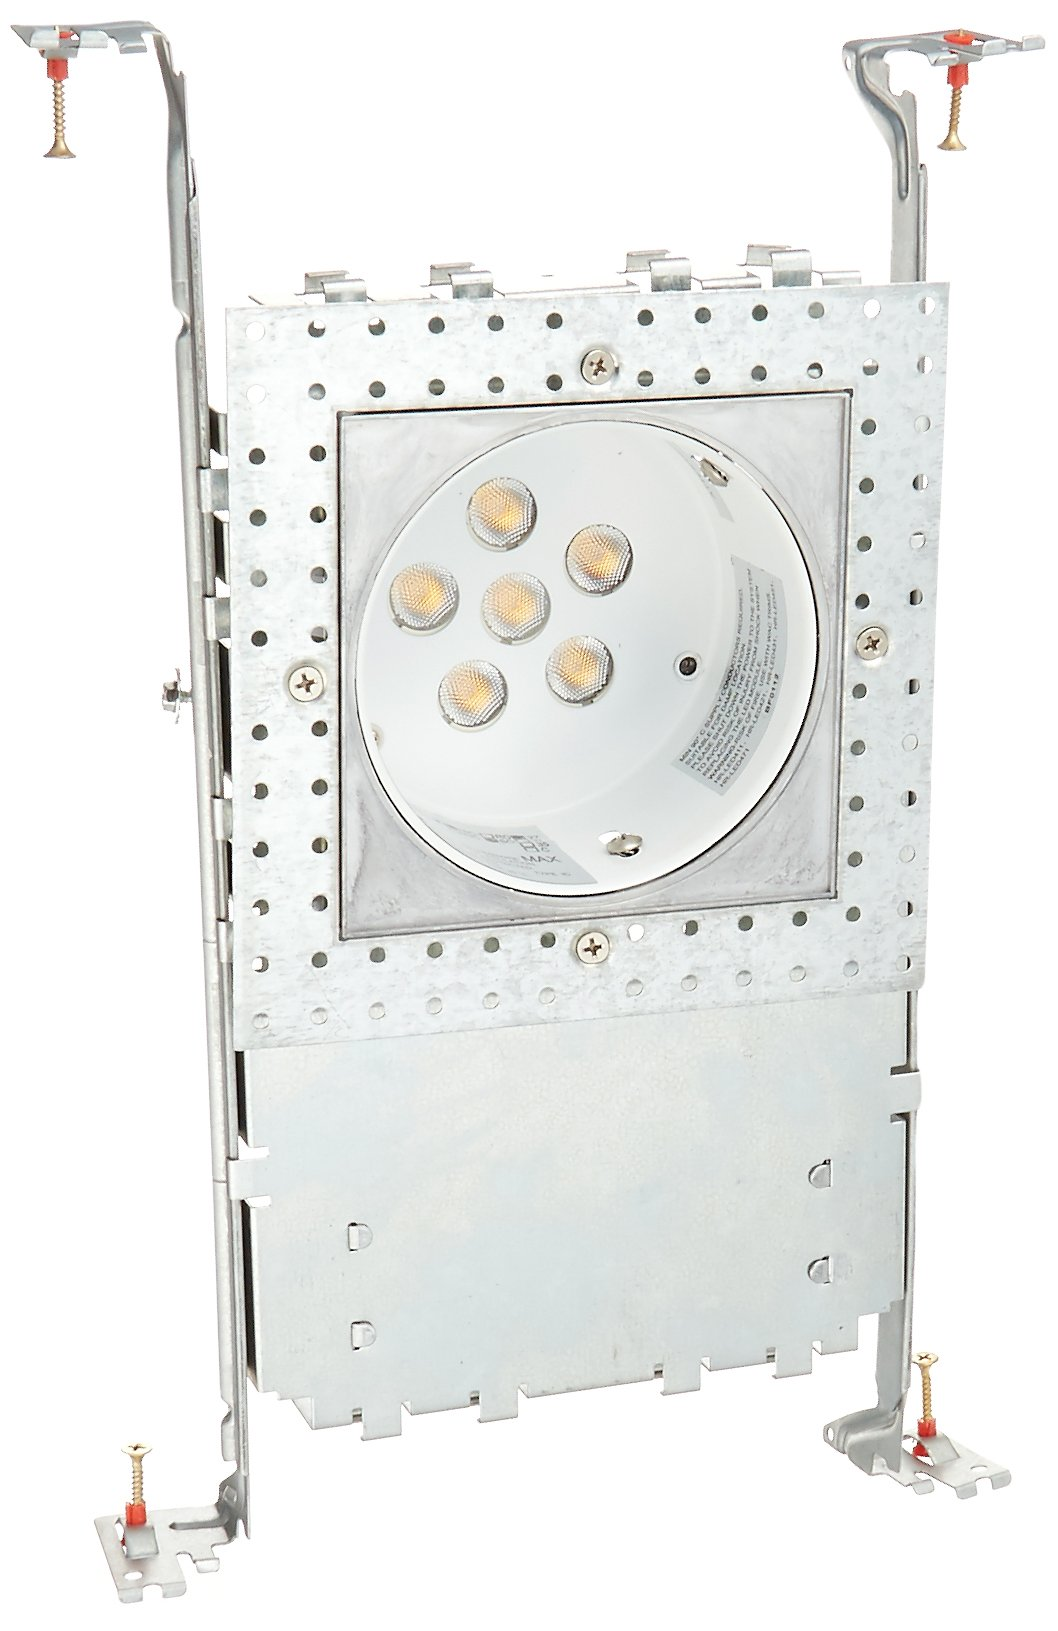 WAC Lighting HR-LED418-NIC-SQ27 LEDme 4-Inch Recessed Downlight - New Construction Invisible Trim - Ic-Rated Housing - 2700K